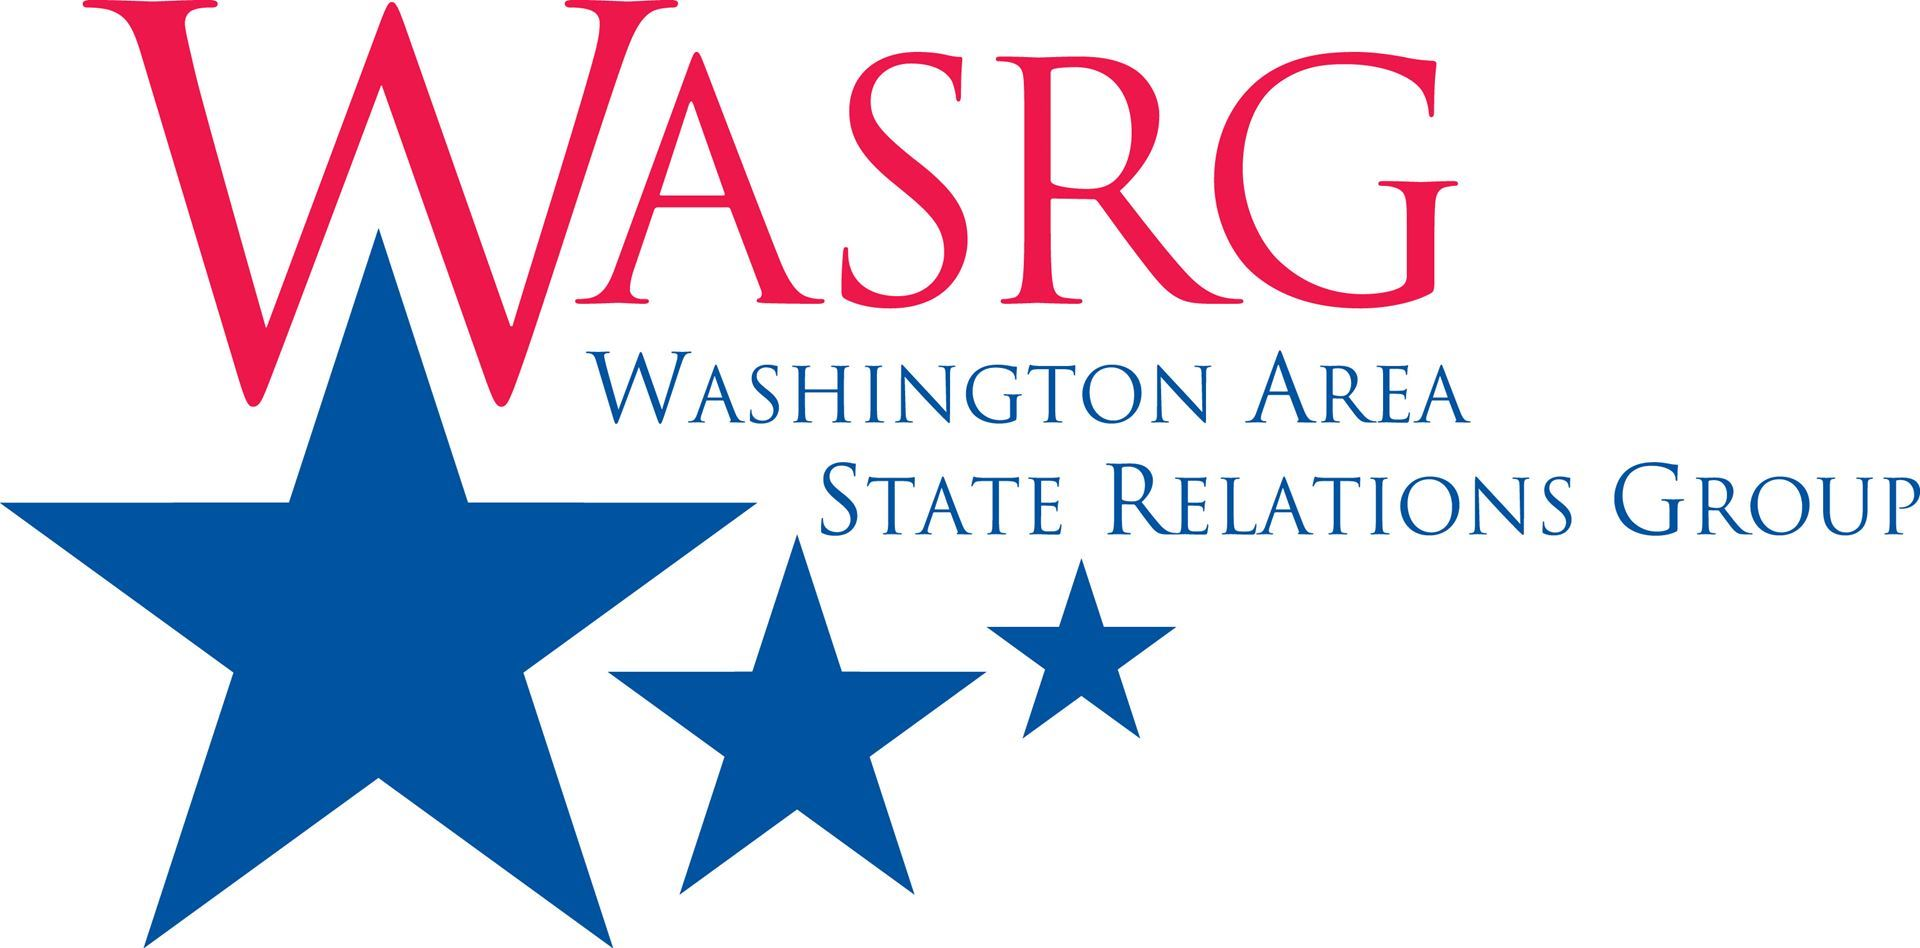 WASRG - Washington Area State Relations Group